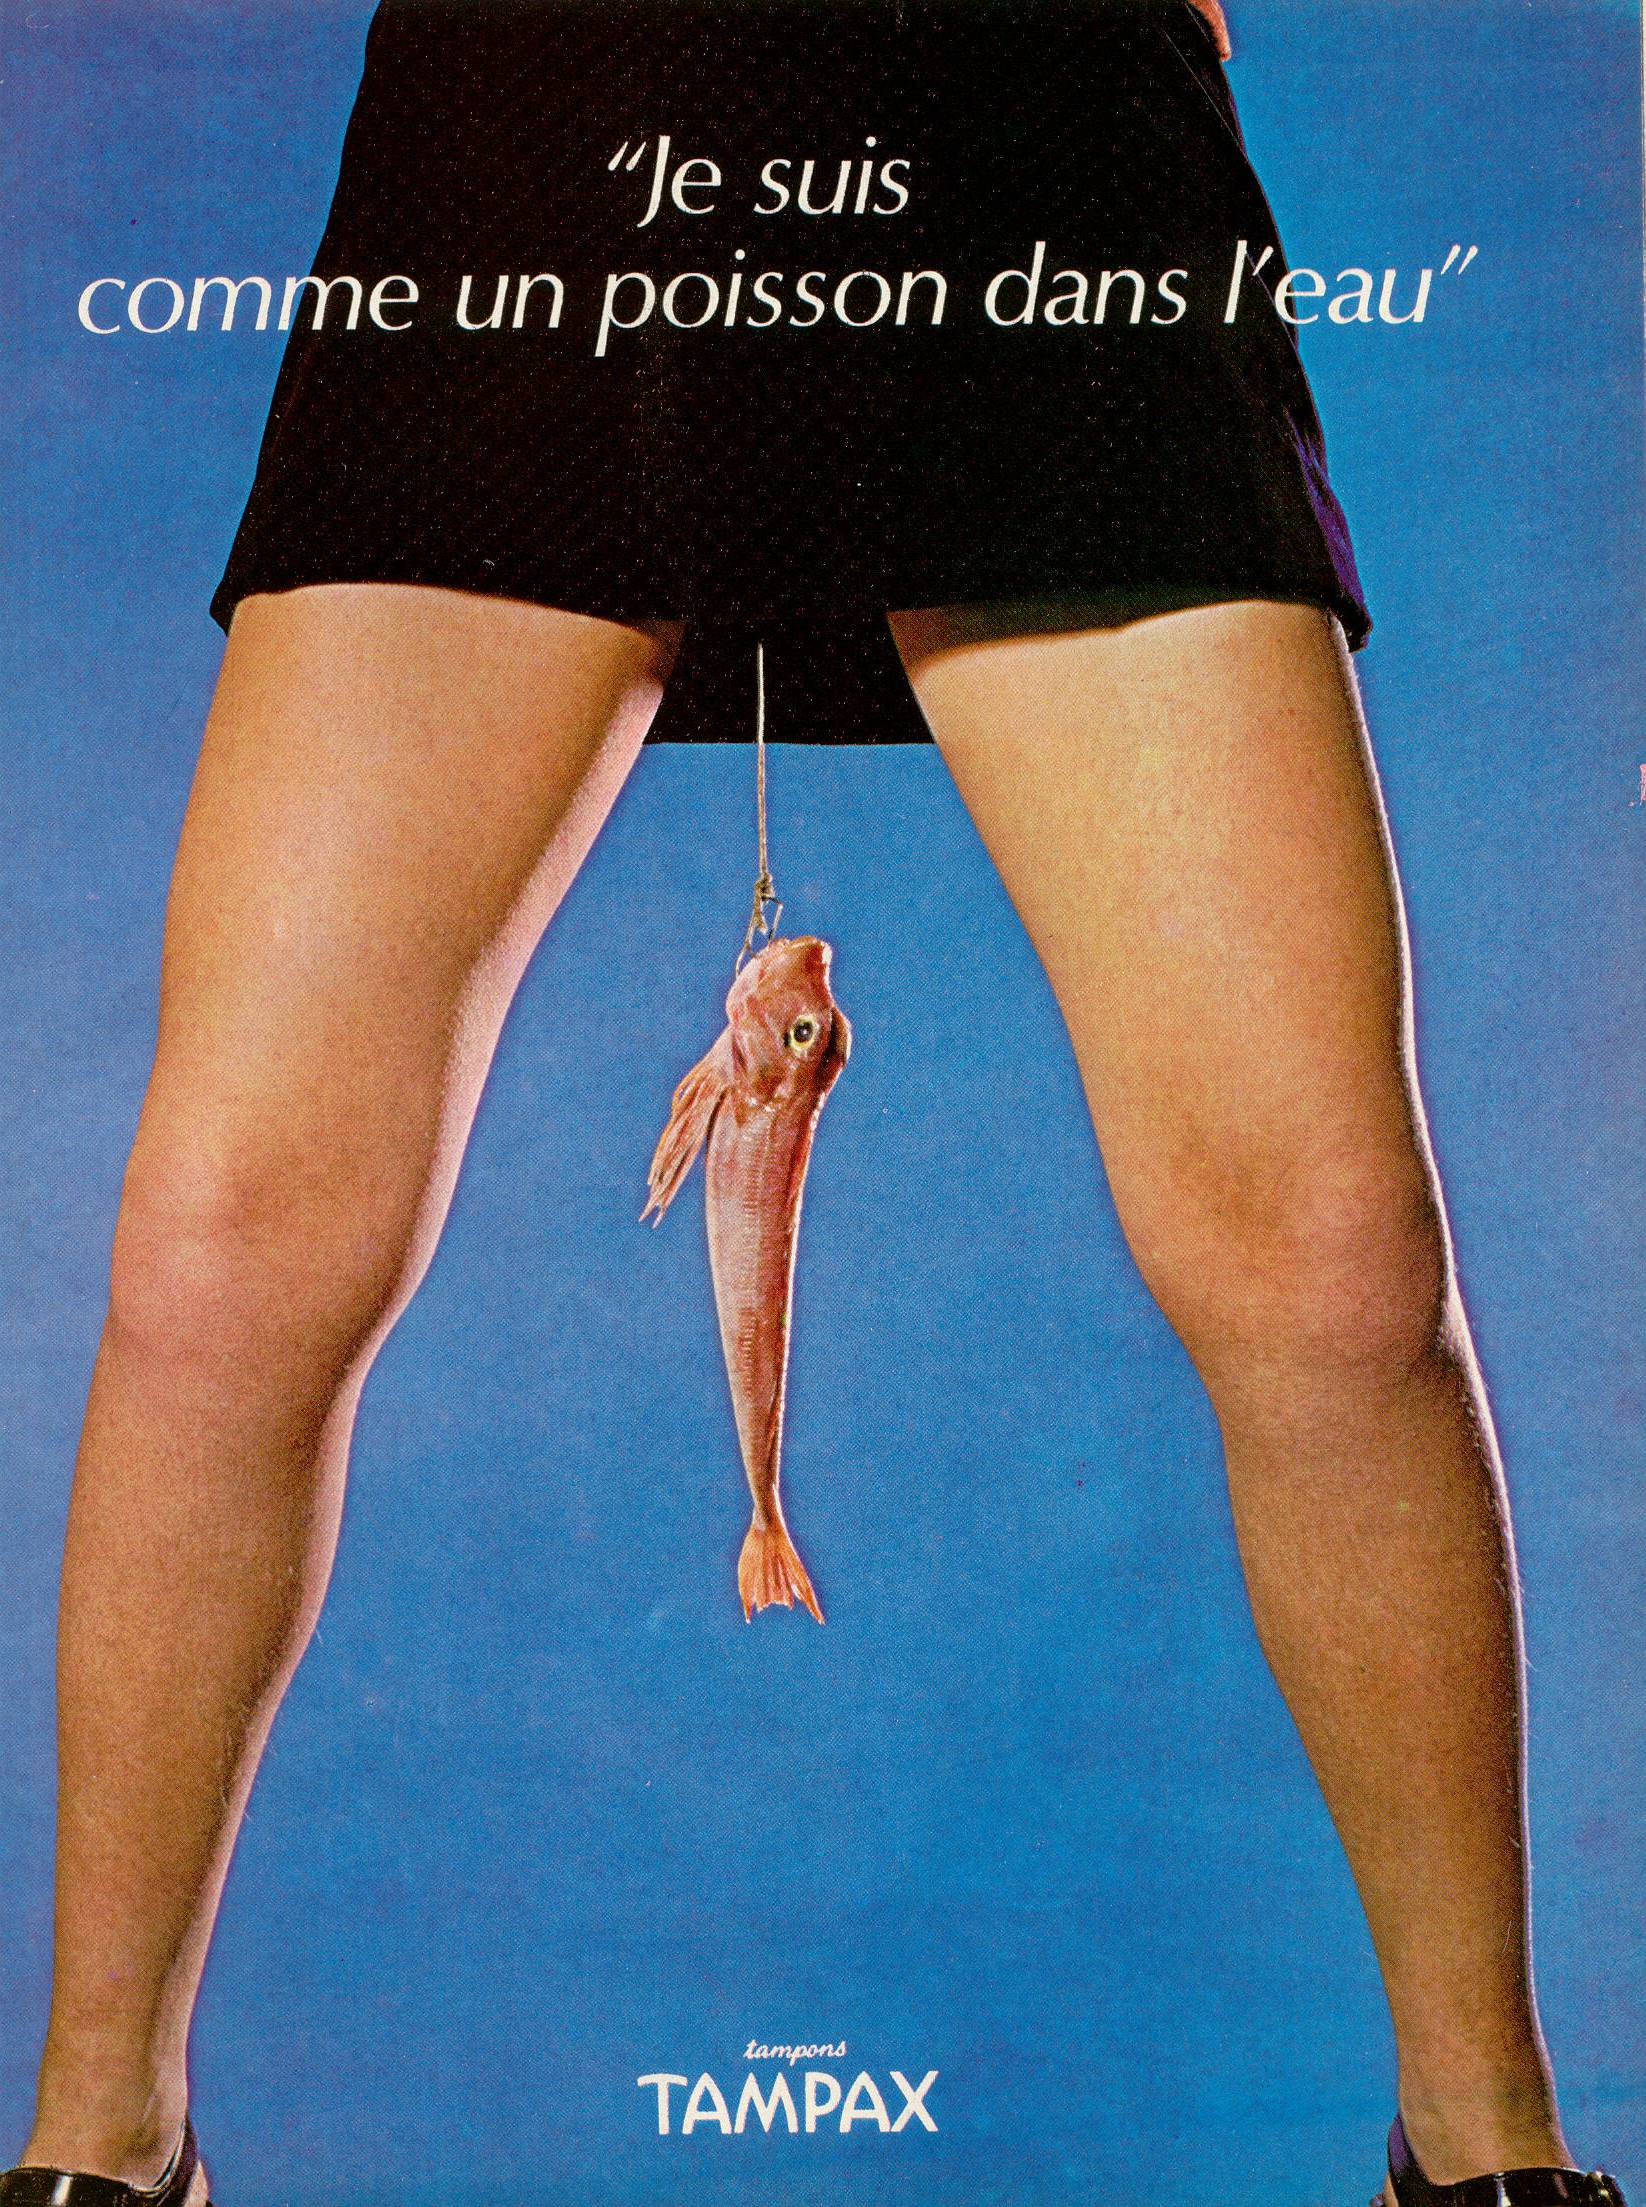 french-fish-tampax-ad.jpg